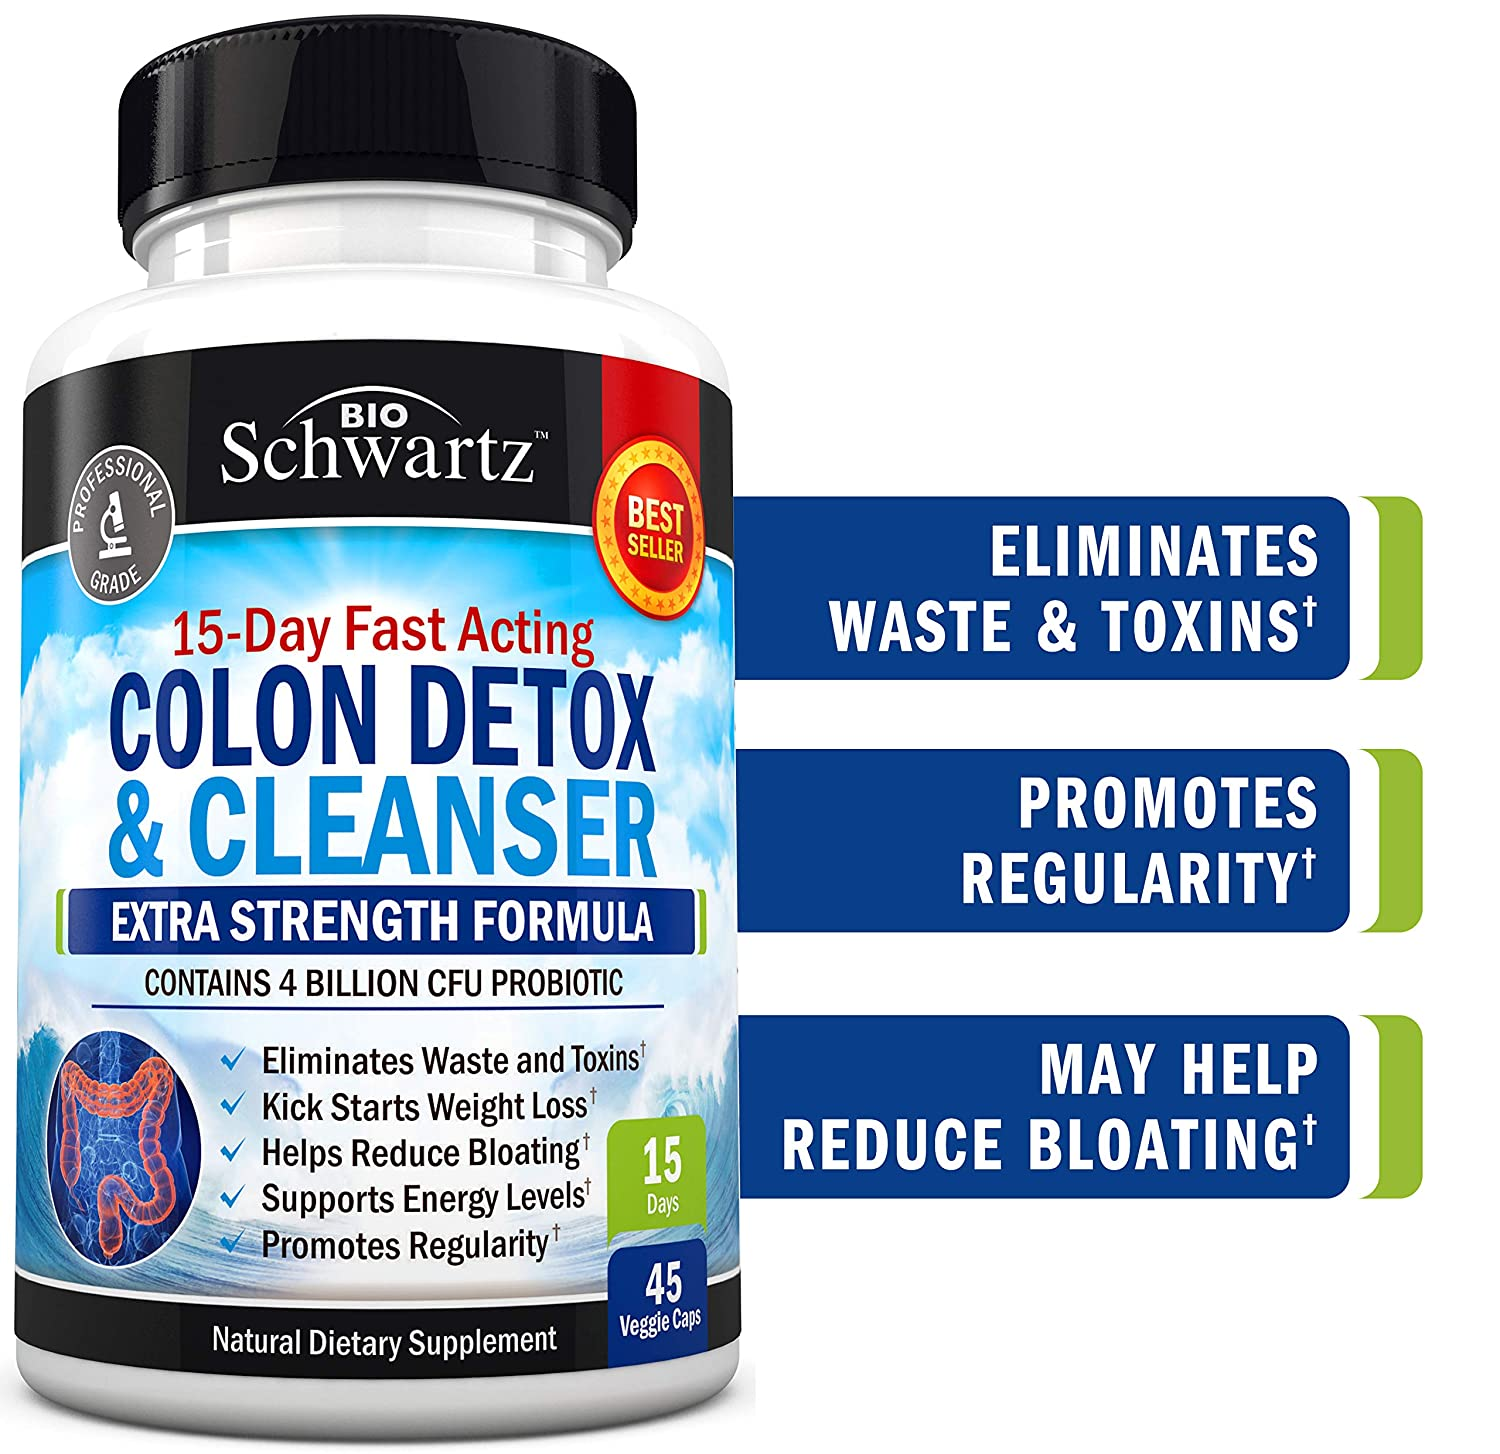 Colon Cleanser Detox for Weight Loss. 15 Day Extra Strength Detox Cleanse with Probiotic for Constipation Relief. Pure Colon Detox Pills for Men Women. Flush Toxins, Boost Energy. Safe Effective